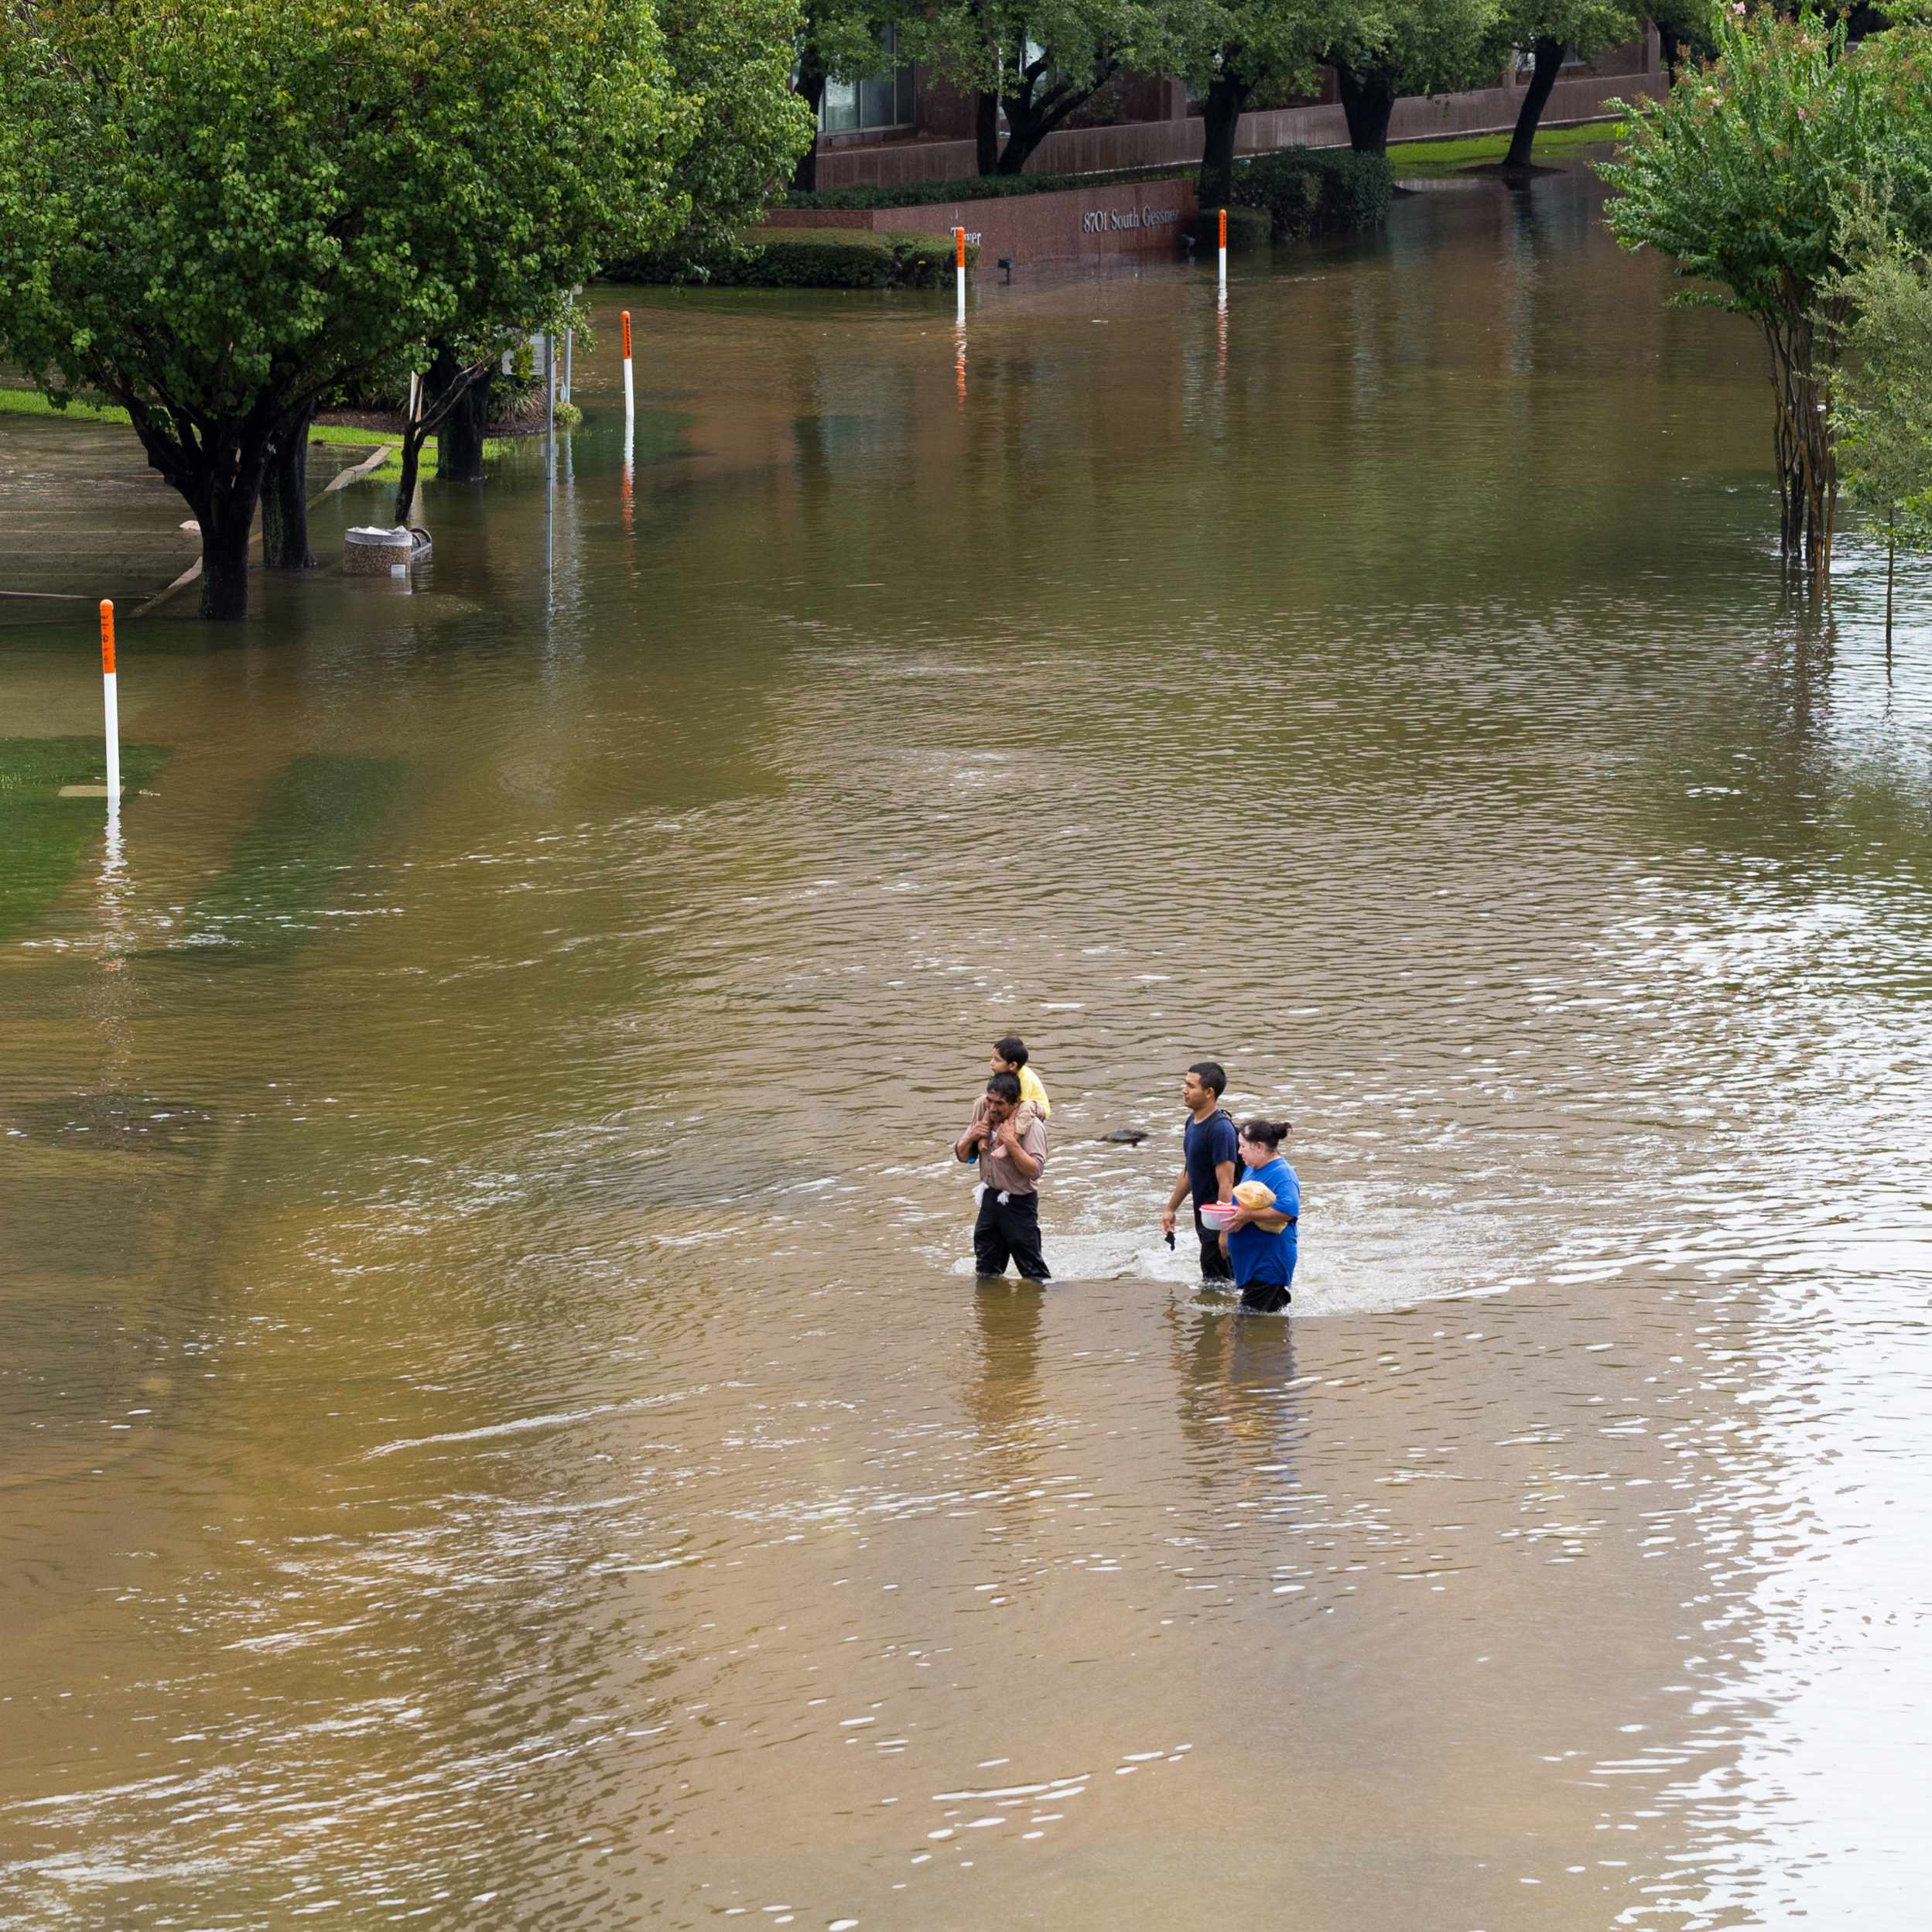 people walking through floodwaters in Houston after Hurricane Harvey